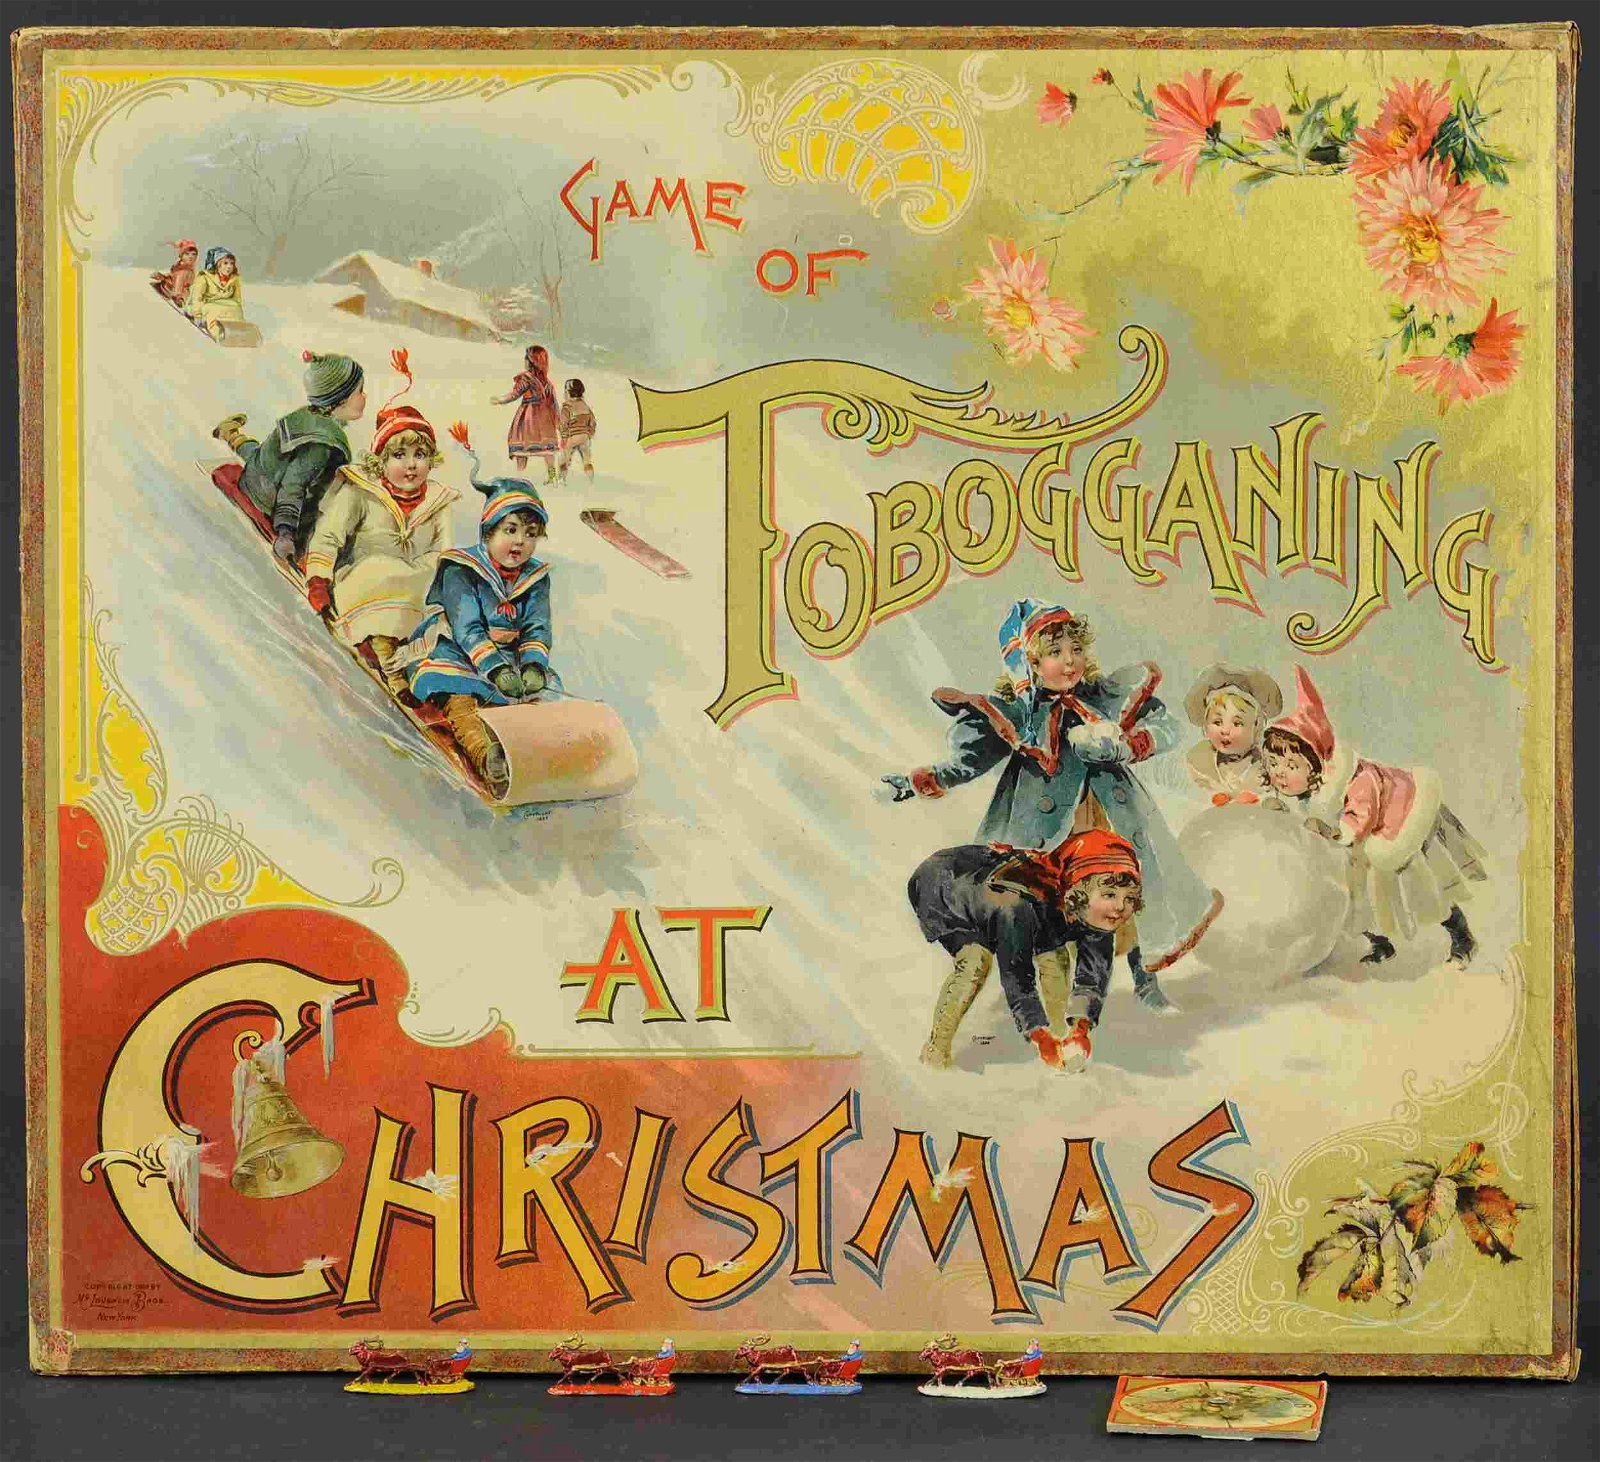 THE GAME OF TOBOGGANING AT CHRISTMAS